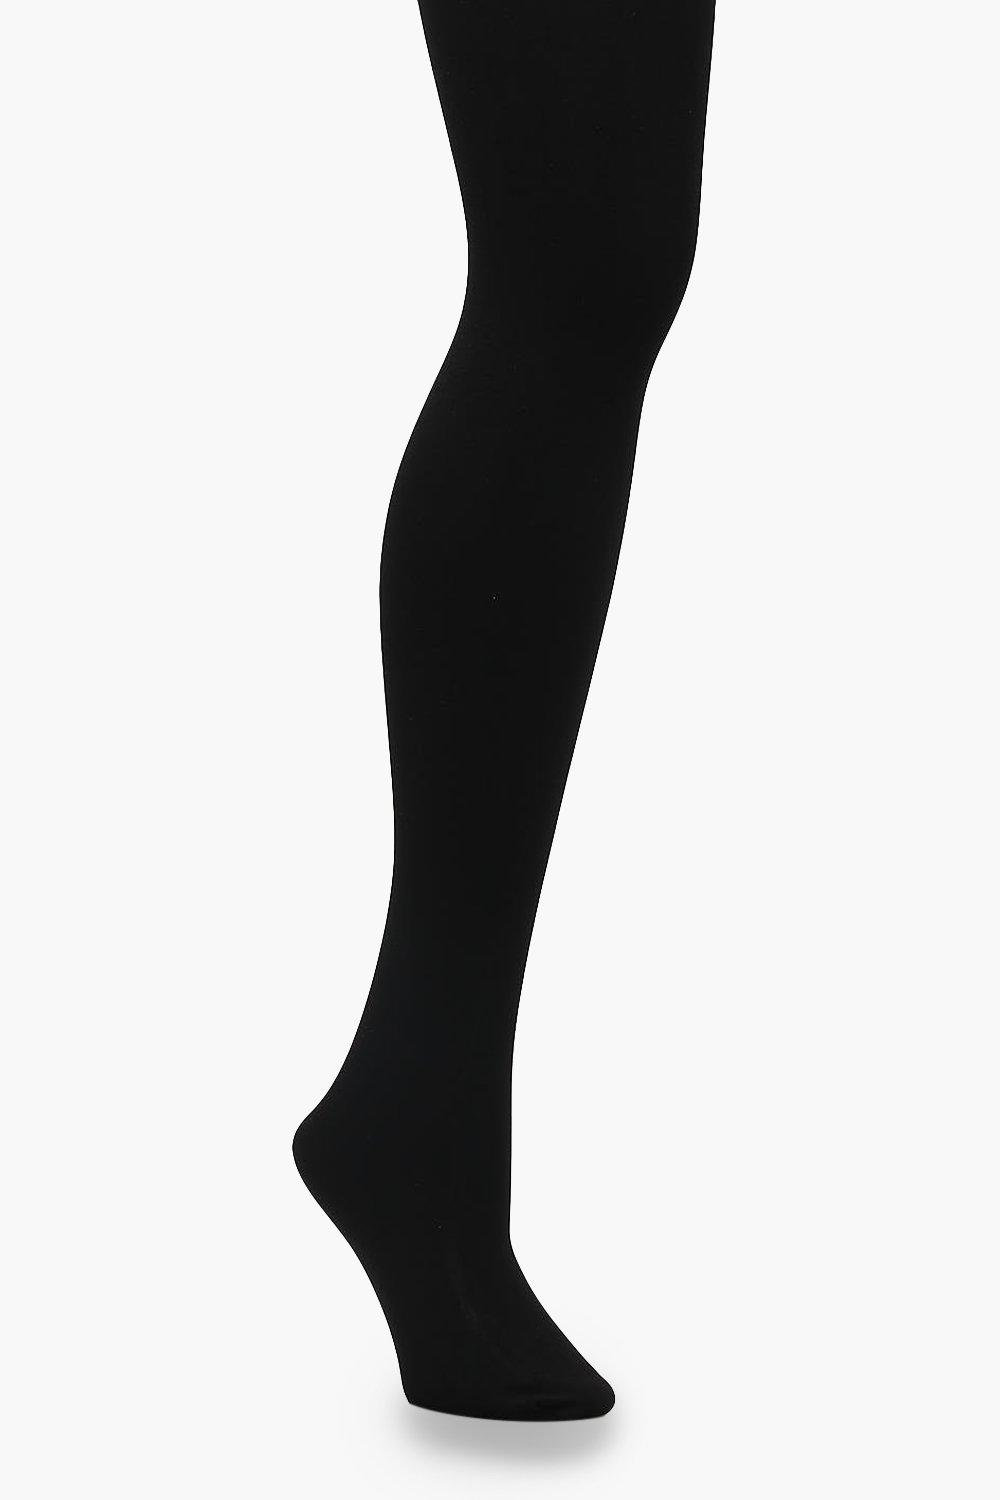 4f84011ca Womens Black 300 Denier Thermal Tights. Hover to zoom